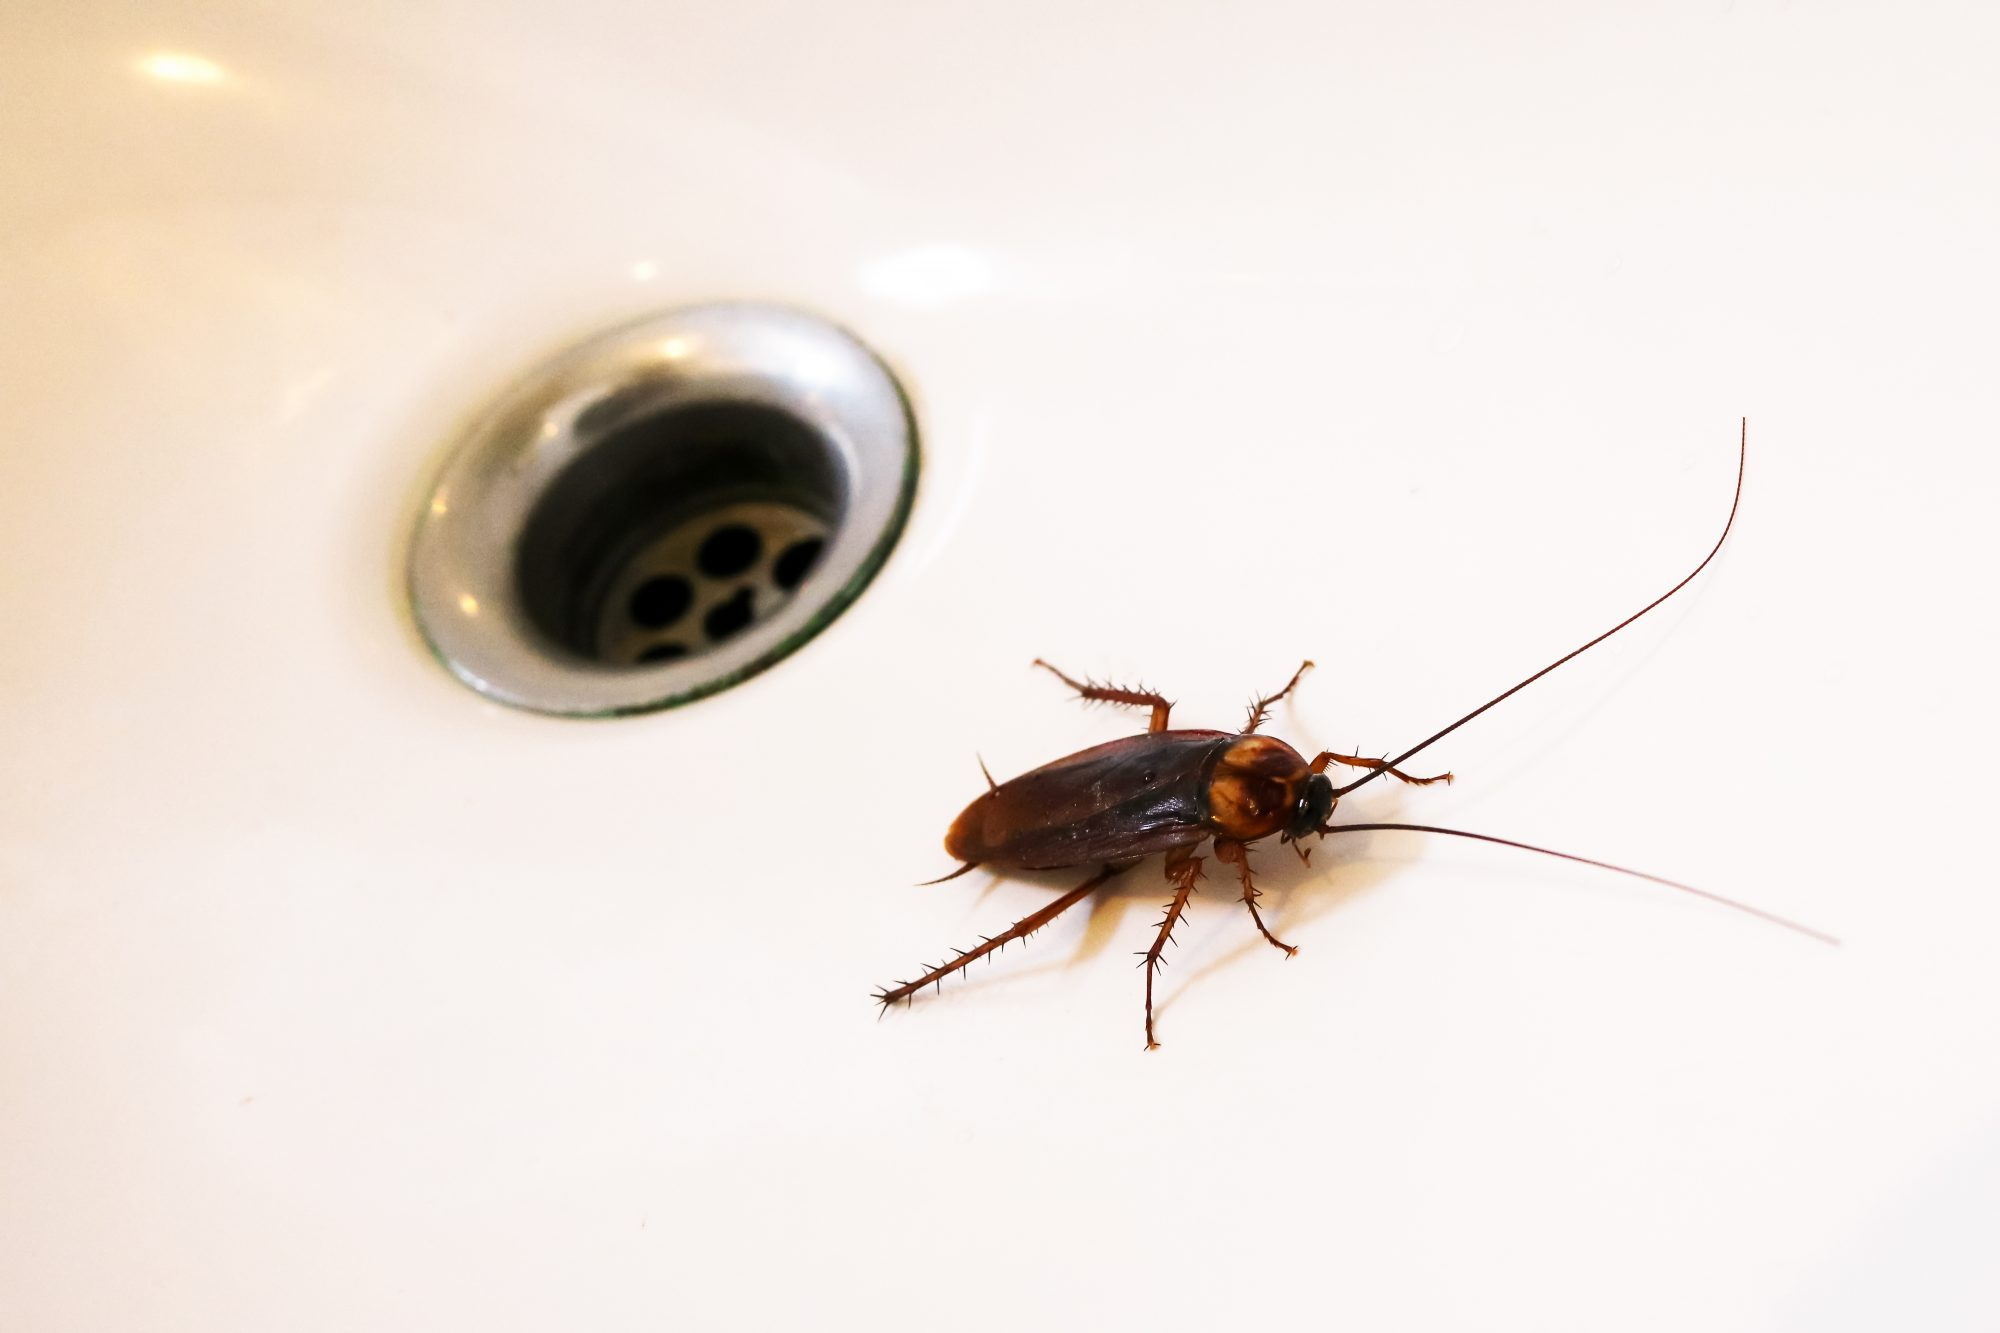 Cockroach in Sink